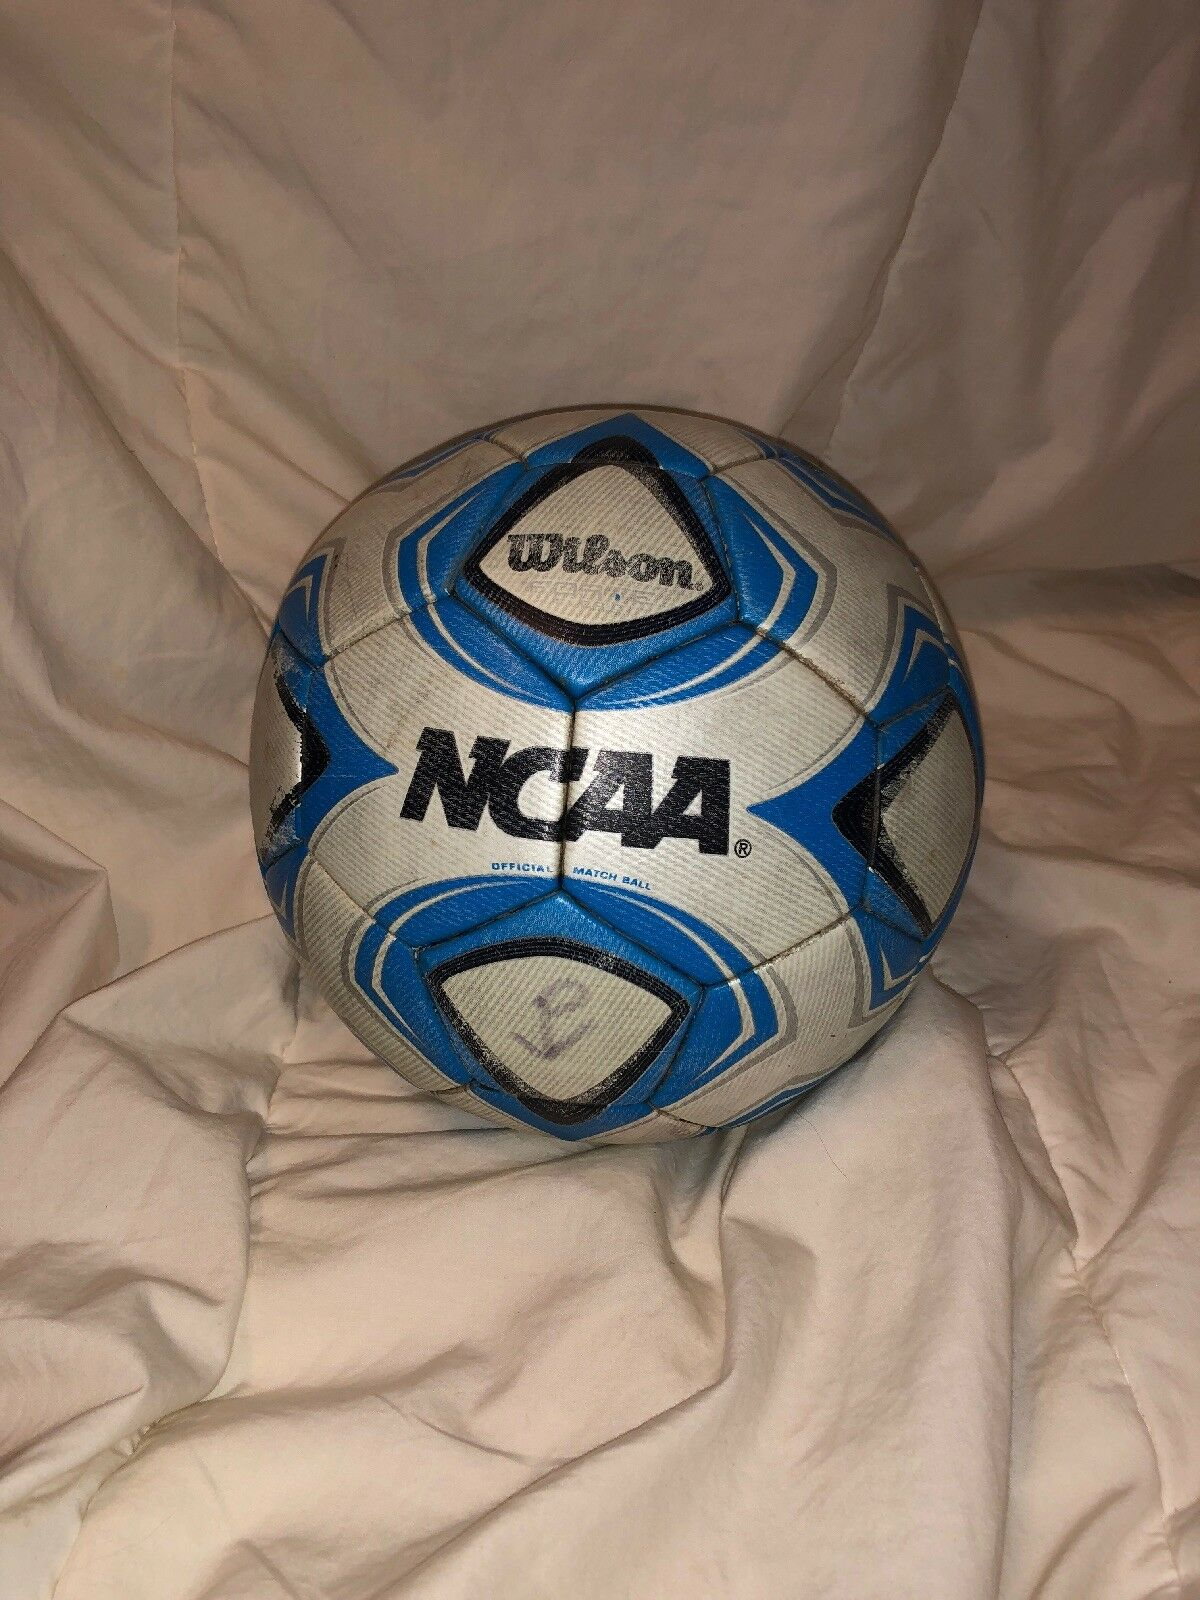 NCAA Wilson Official Soccer Match Ball Größe 5 5 5 a00c56